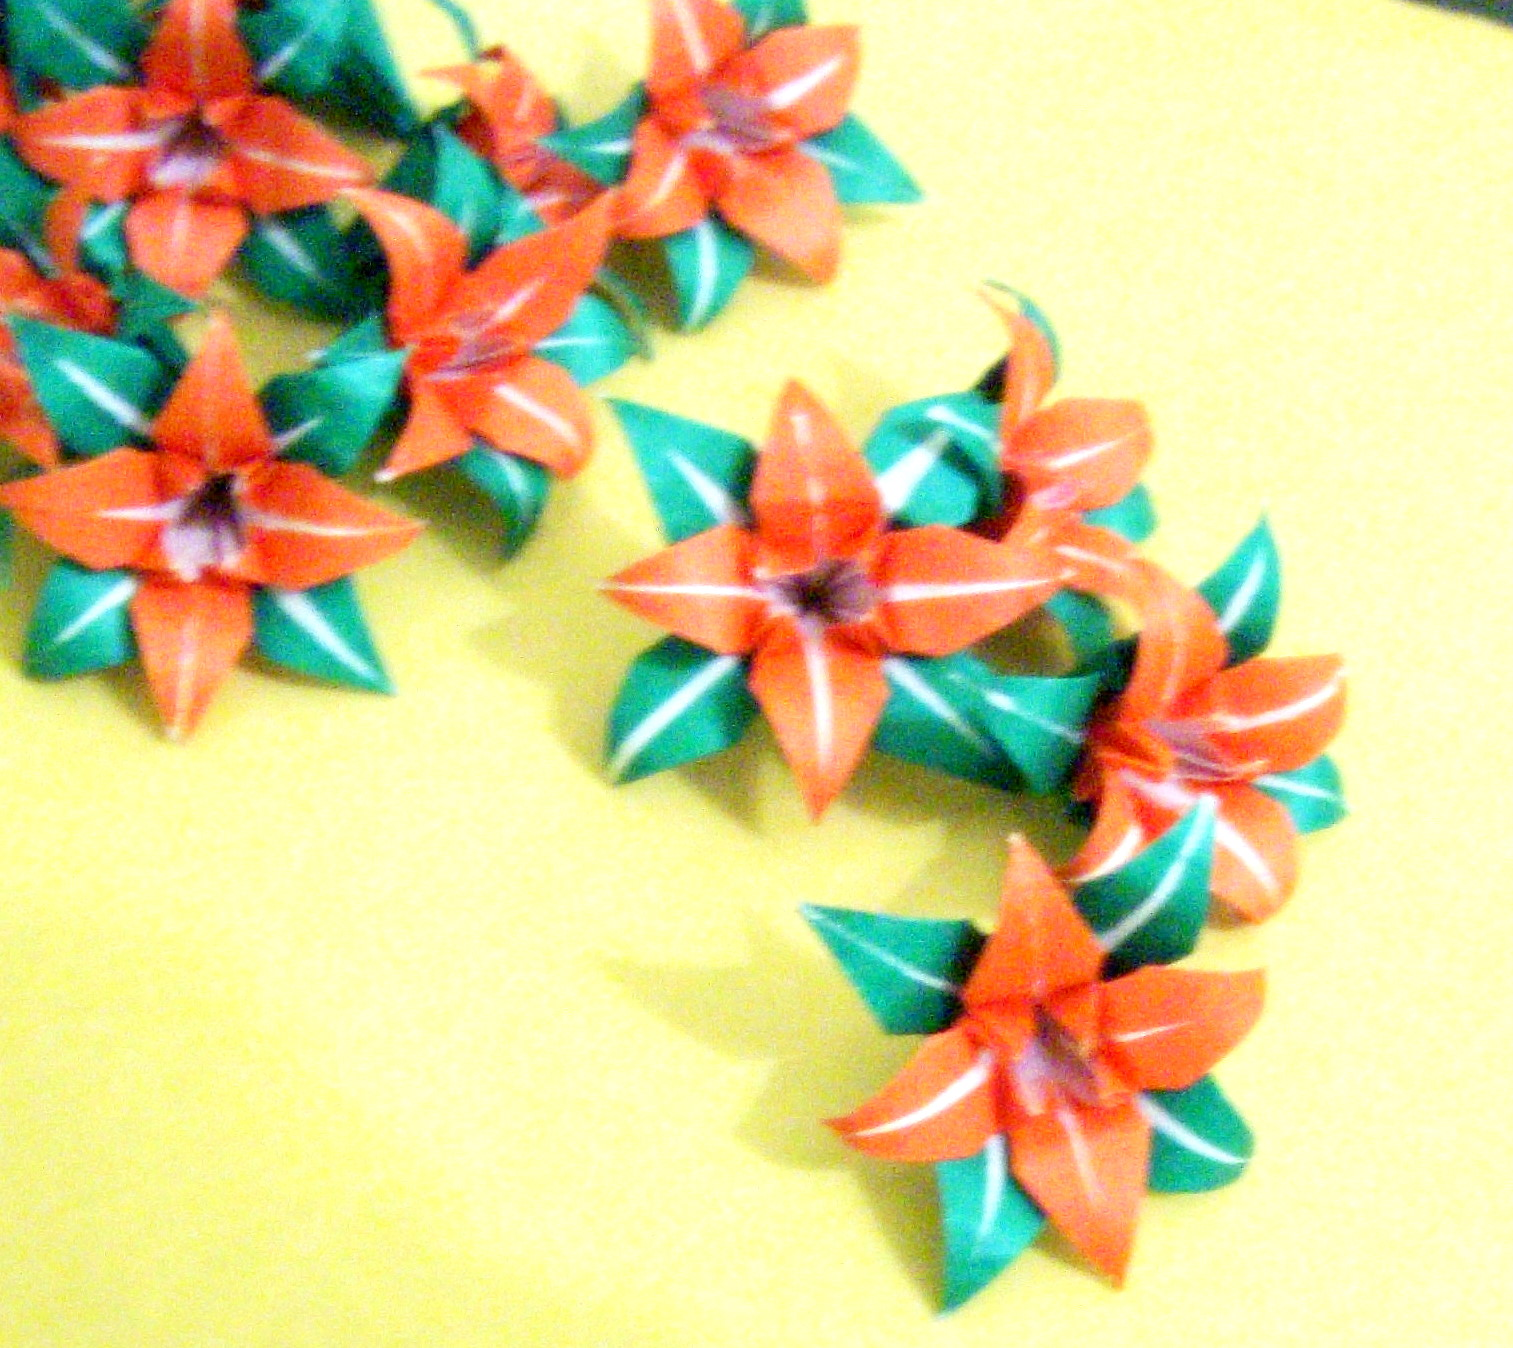 FLOWER ORIGAMI FOLDING INSTRUCTIONS EMBROIDERY & ORIGAMI